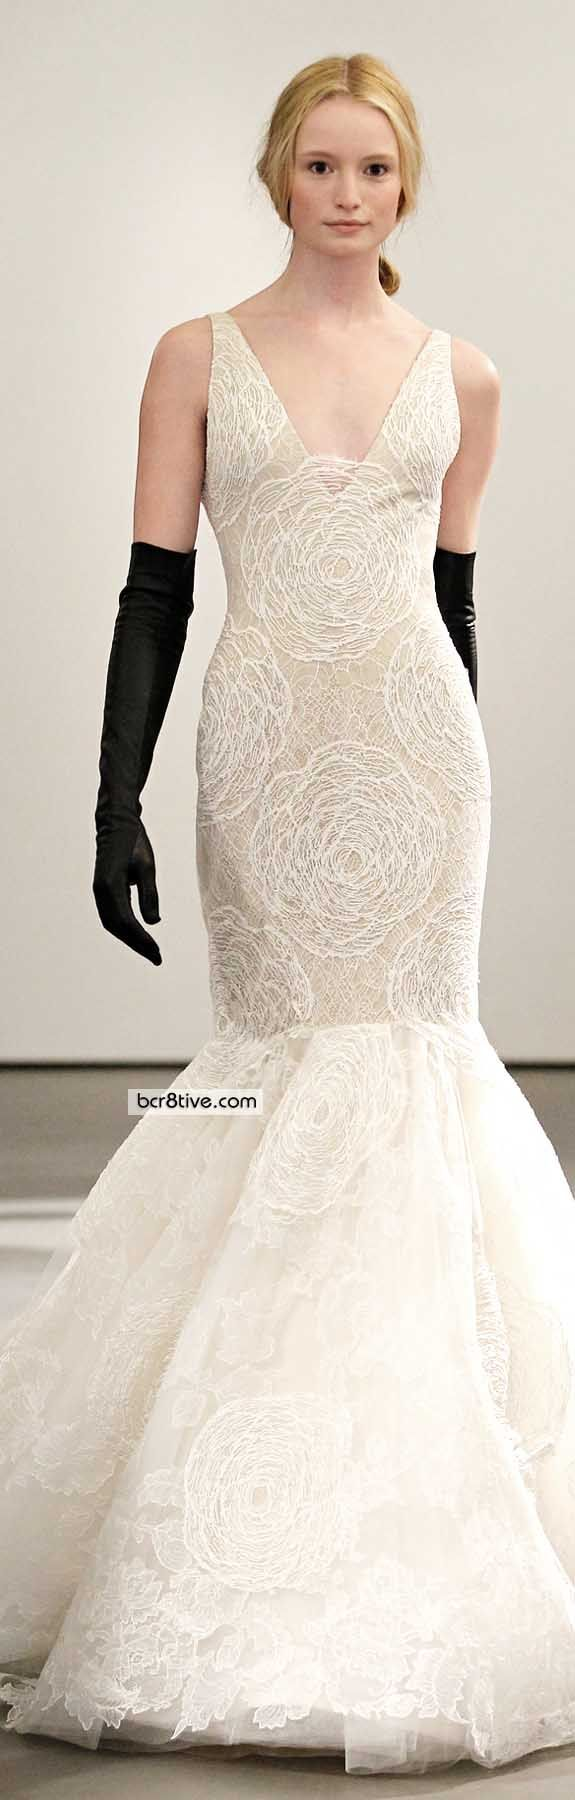 147 best Vera Wang Bridal images on Pinterest | Wedding frocks ...